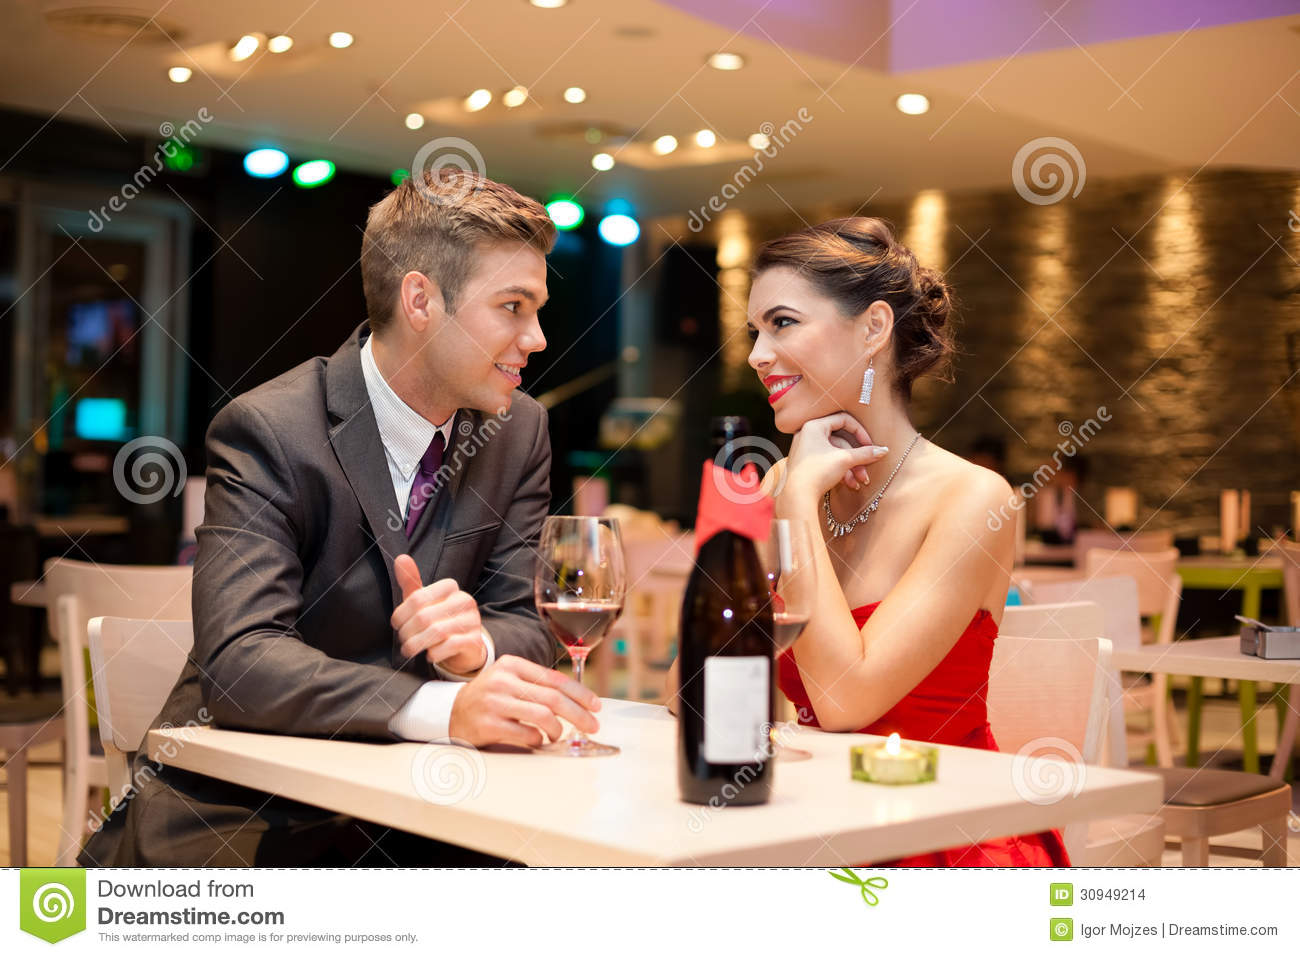 ... happy couple romantic date at restaurant, celebrating valentine day